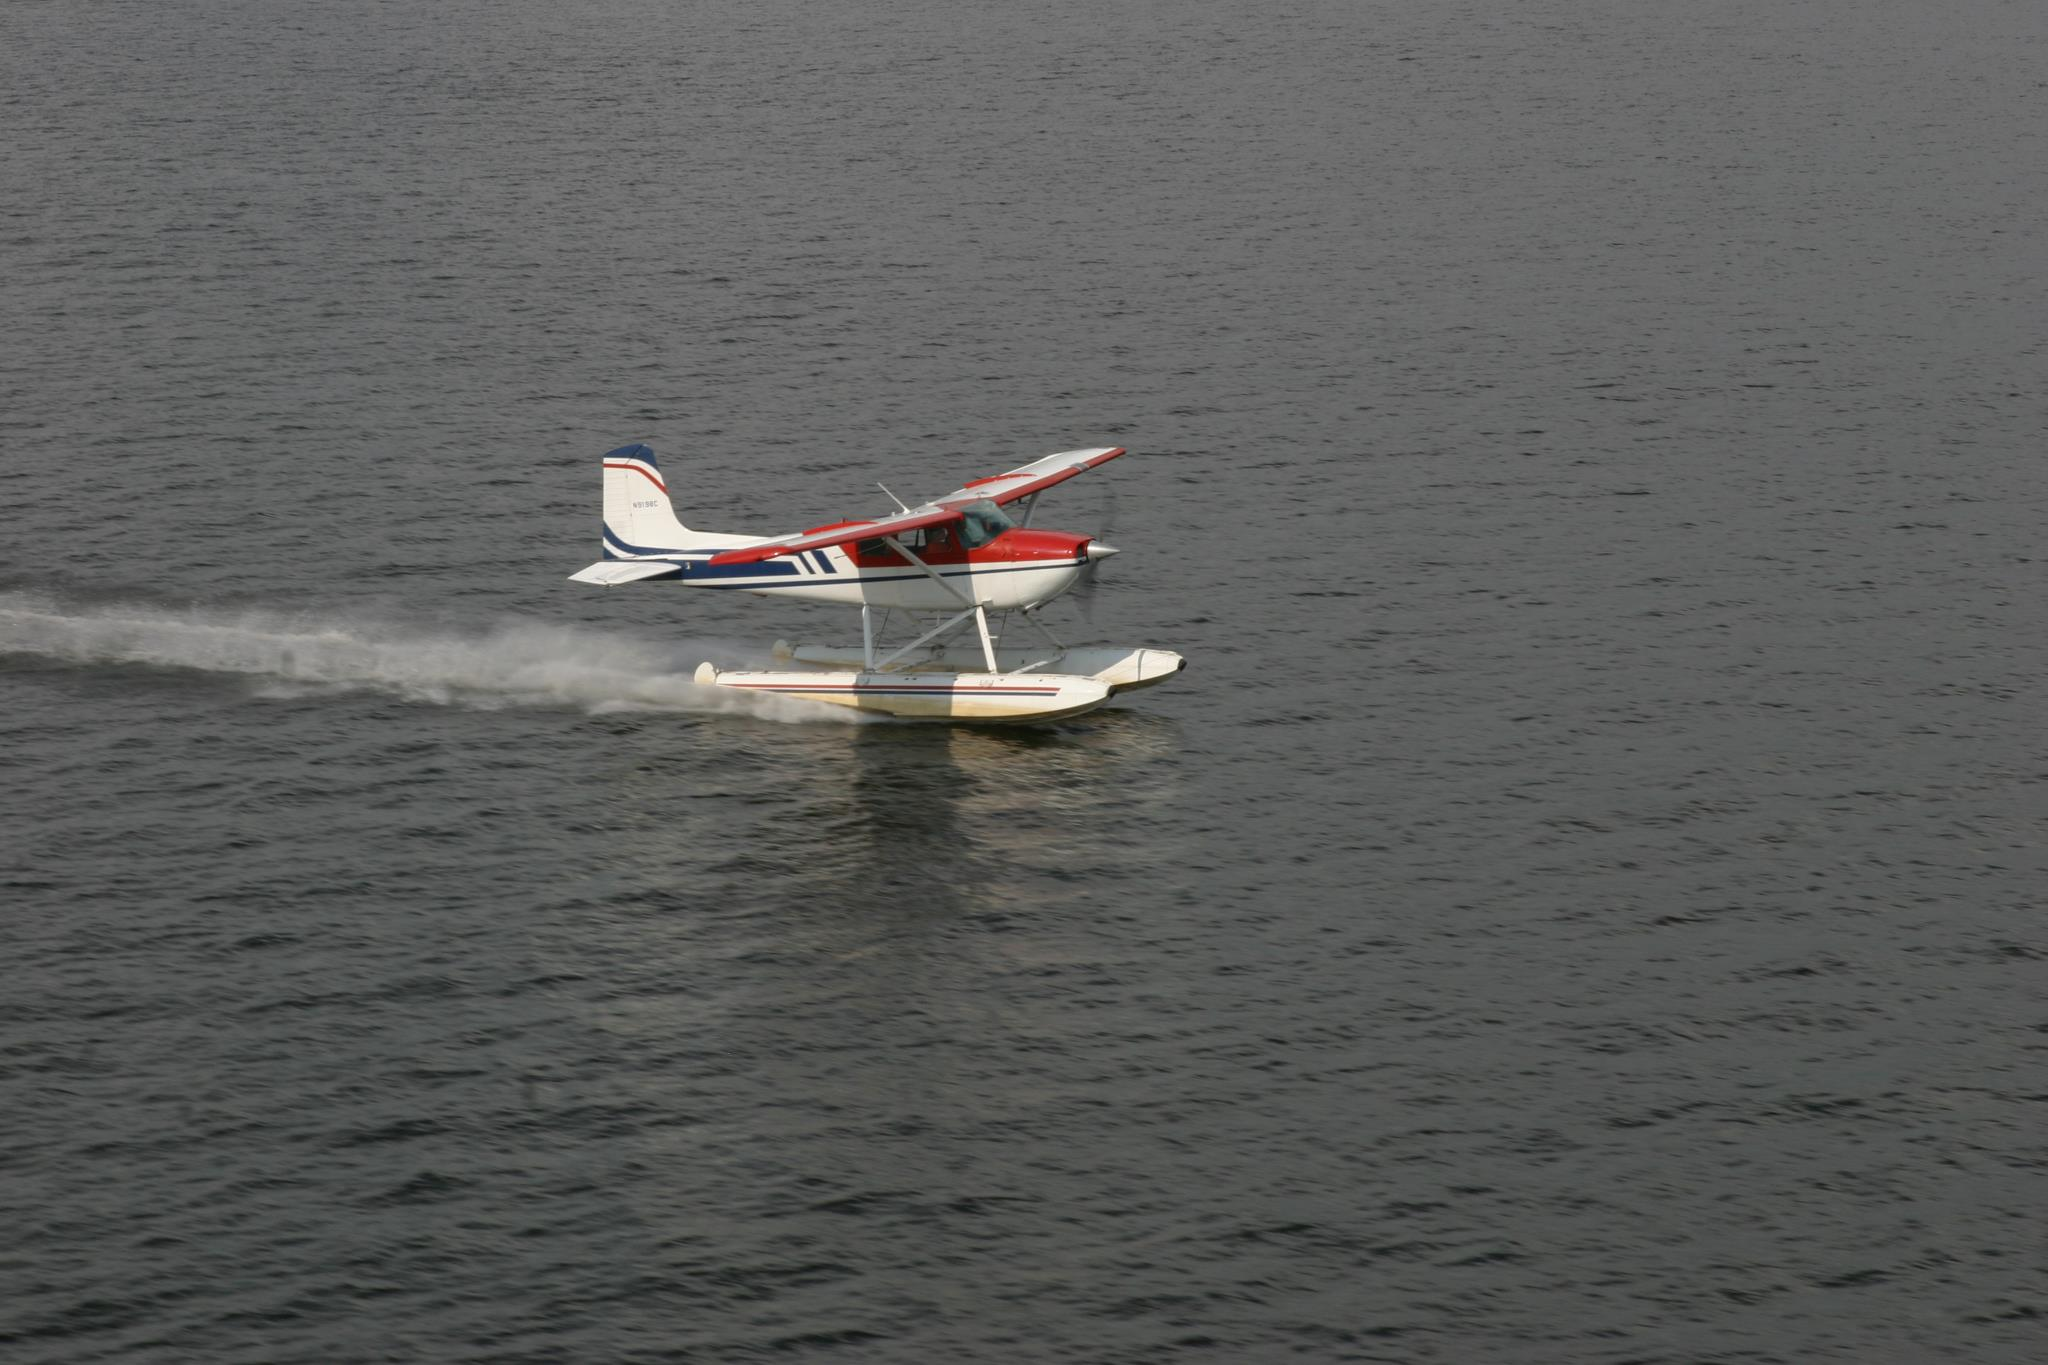 Jones Brothers Air & Seaplane Adventures